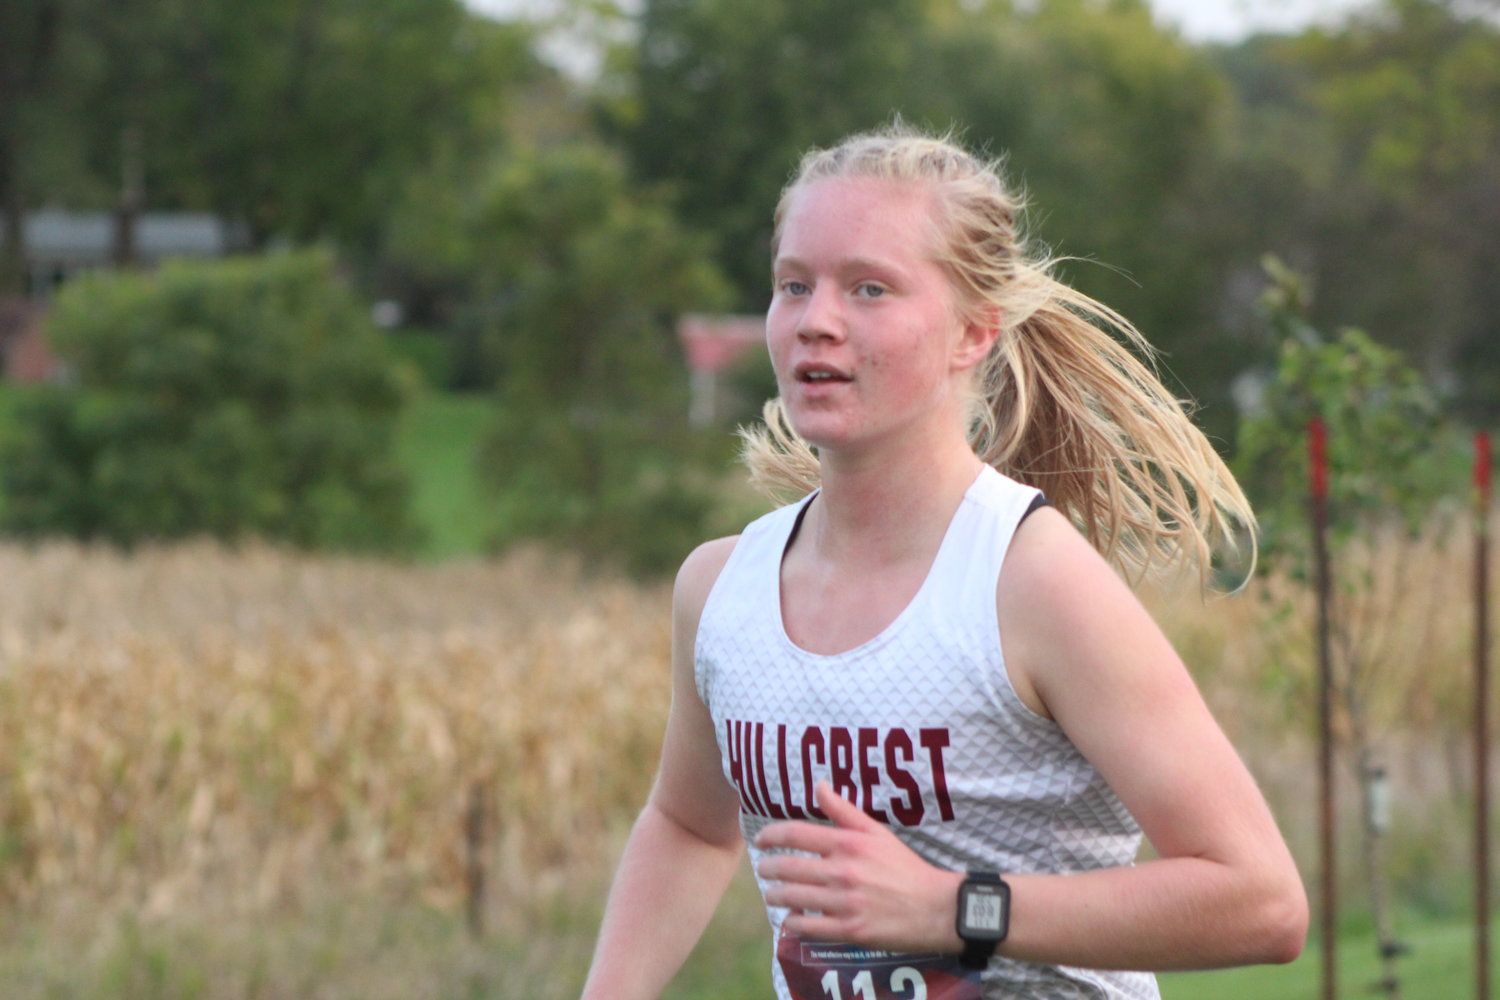 Leah Bontrager of Hillcrest Academy finished 26th with a time of 22:30.